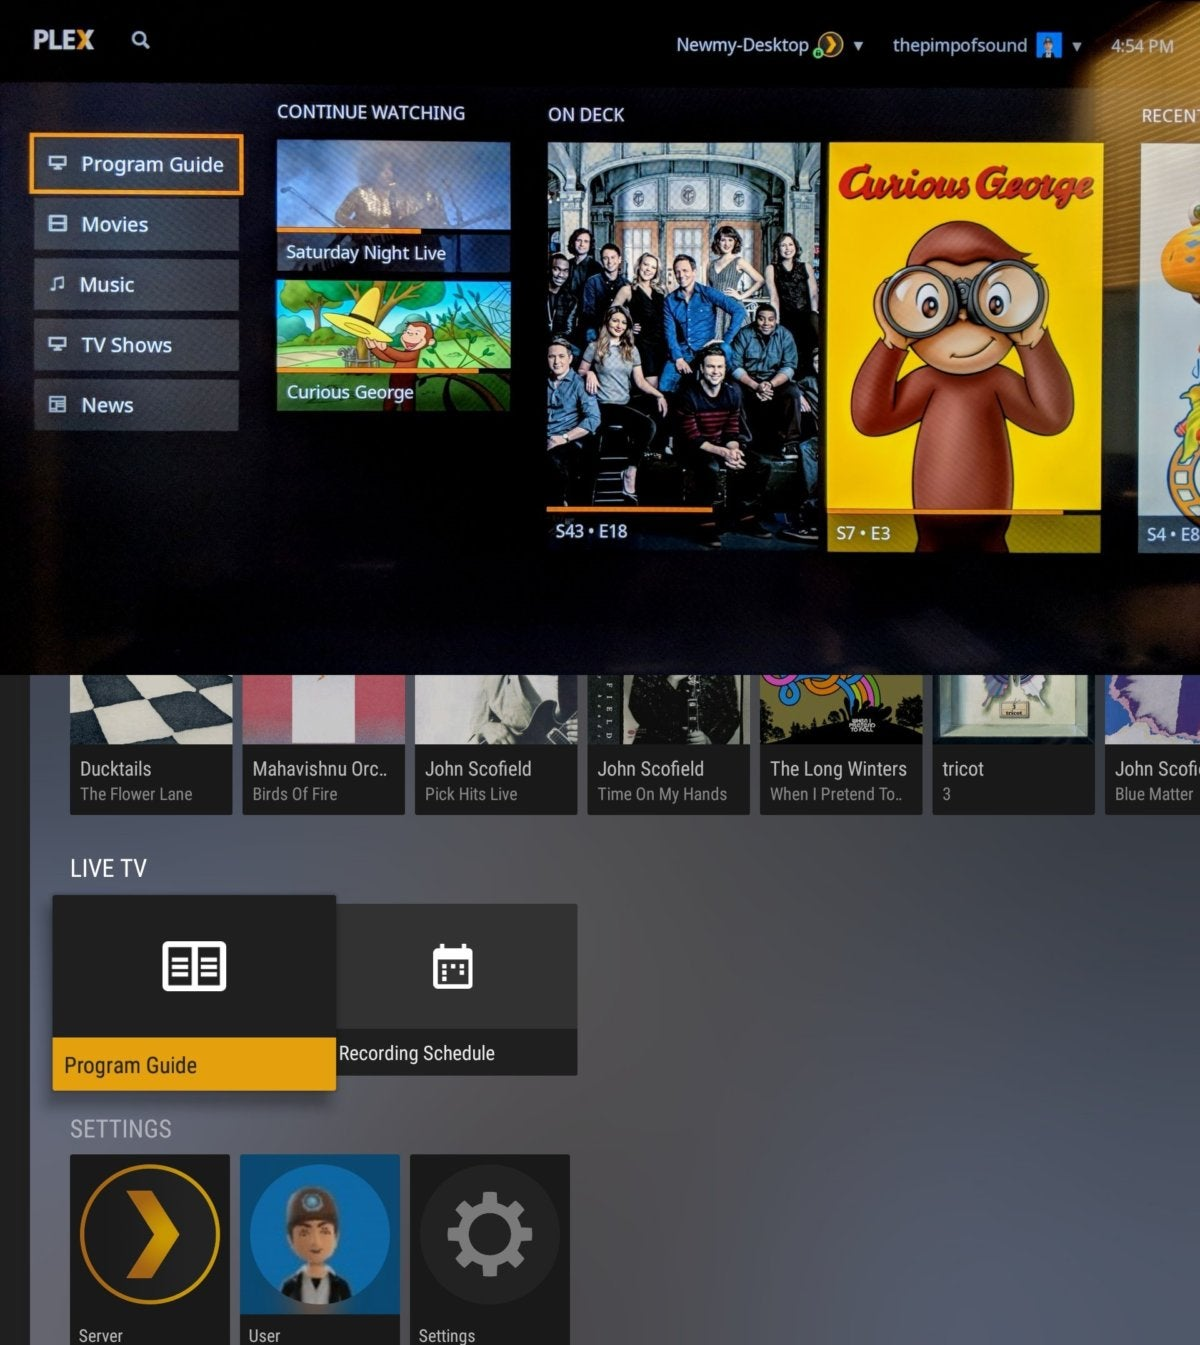 Plex DVR review: Still the best option for power users